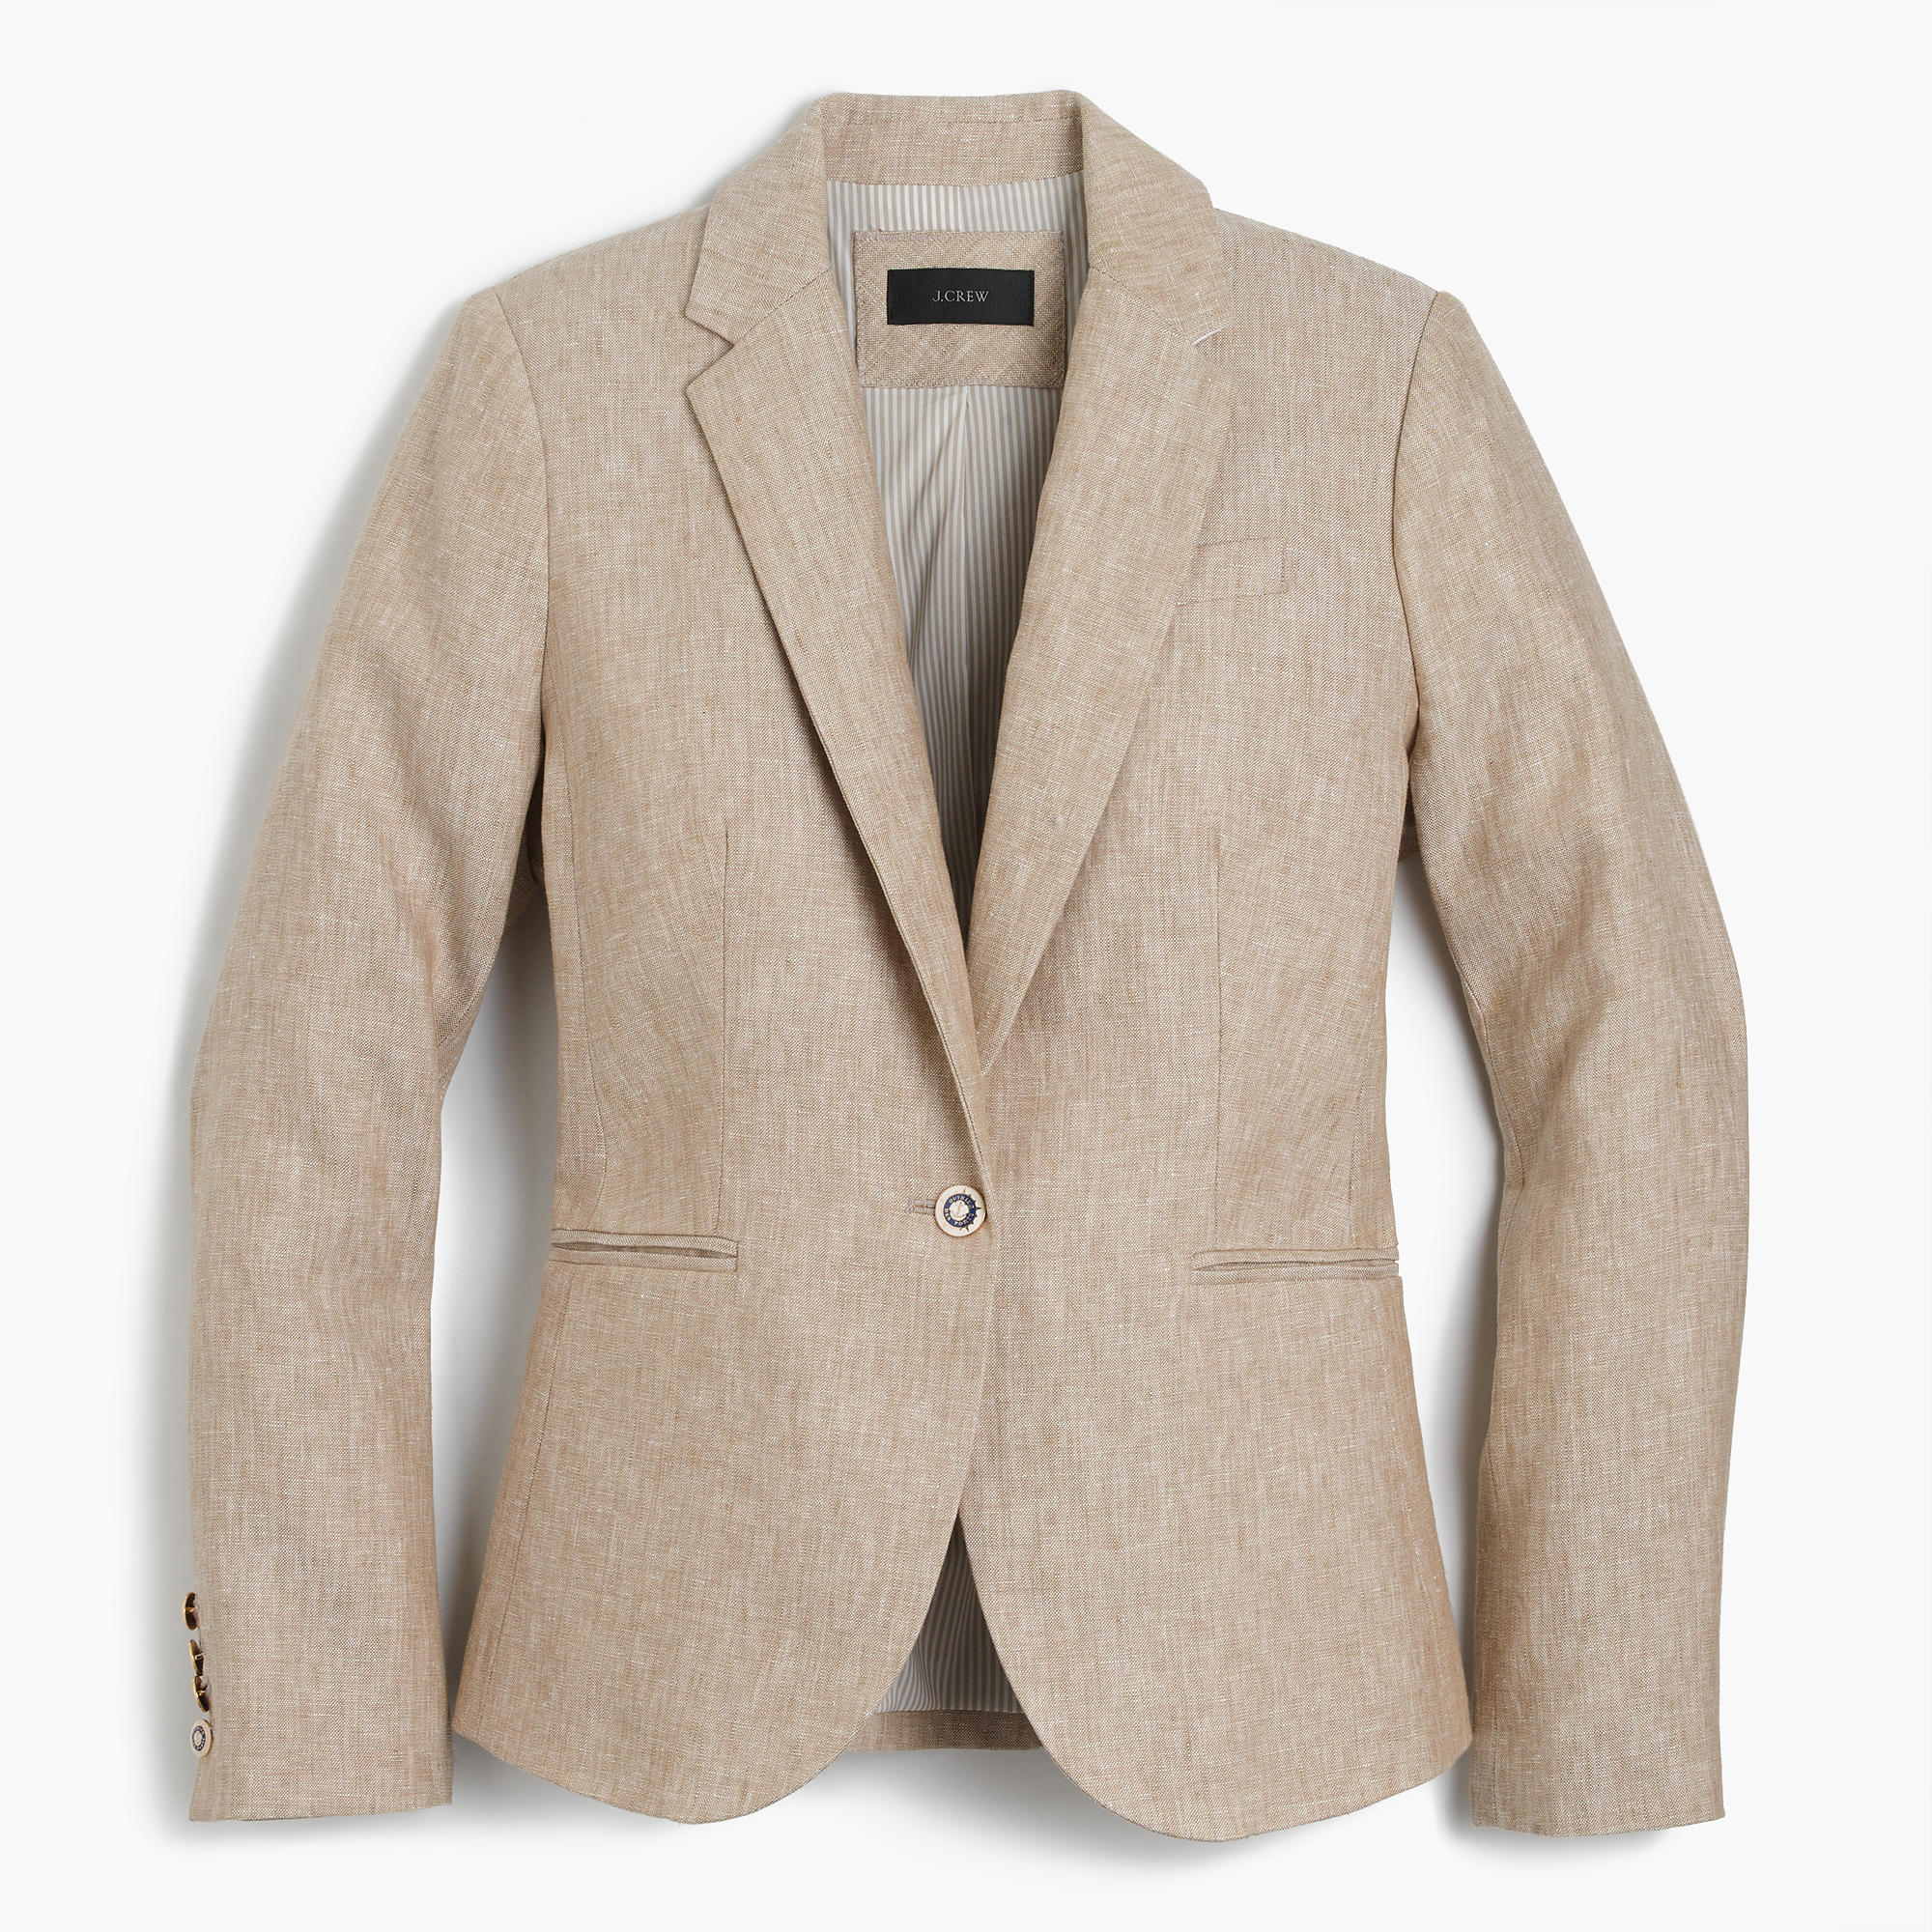 Find a great selection of women's blazers & jackets at neidagrosk0dwju.ga Shop top brands like Vince Camuto, Topshop, Lafayette and more. Free shipping and returns.